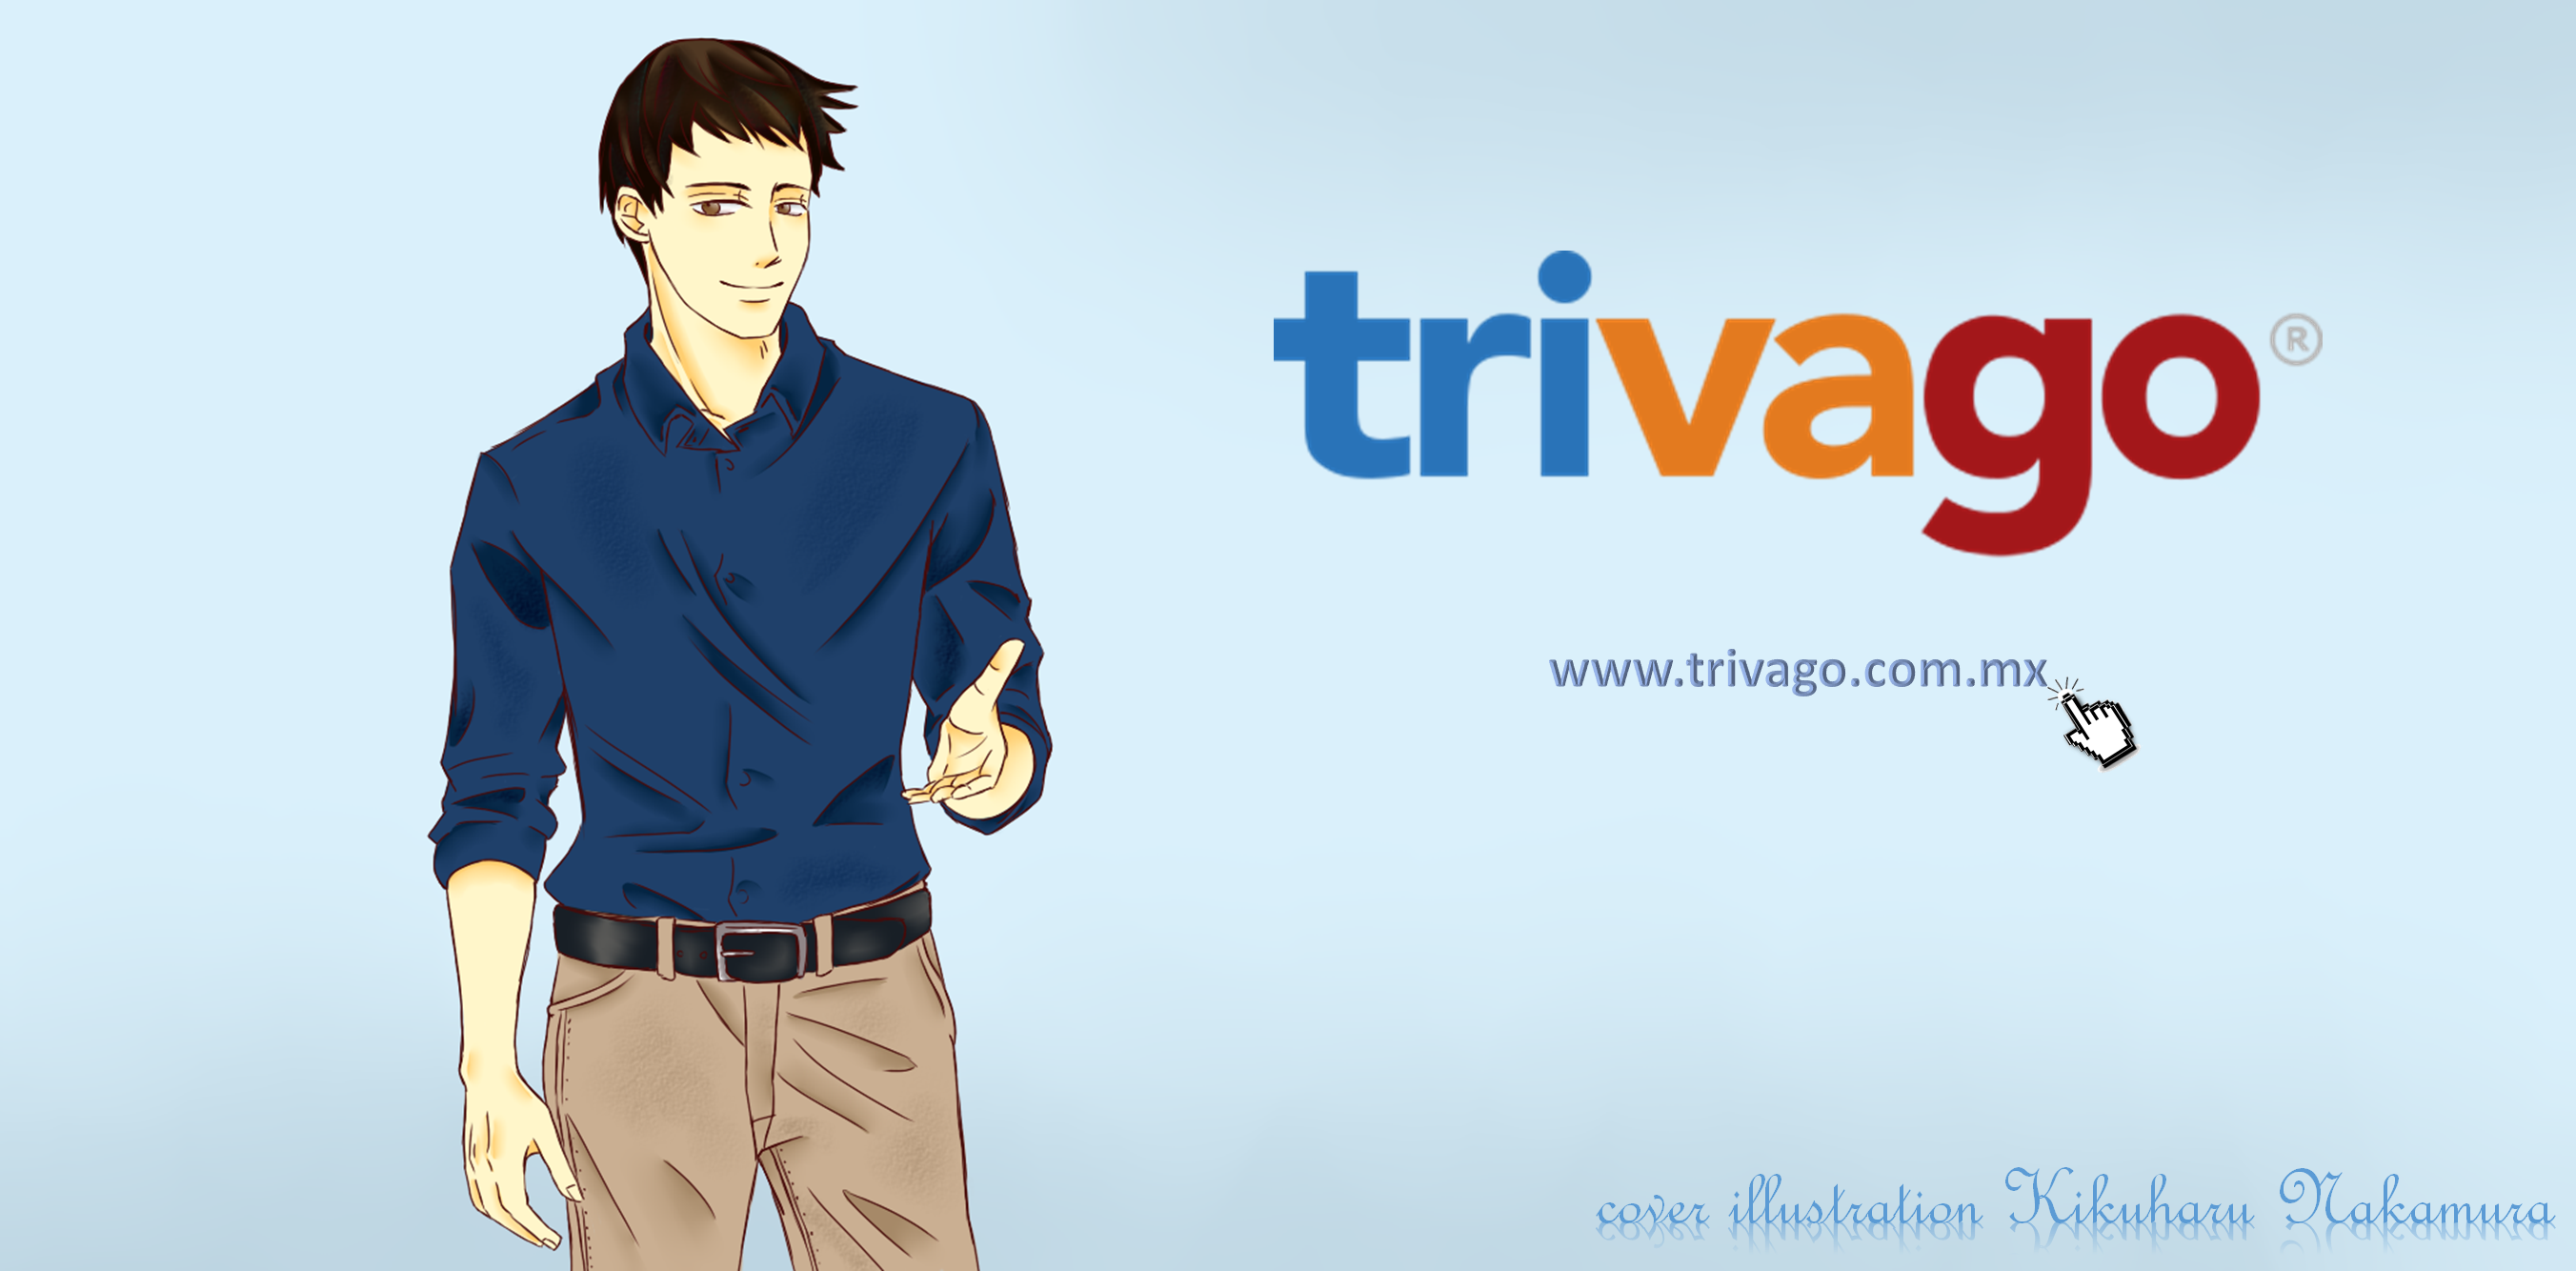 Hotel Trivago By AziuLPre Hotel Trivago By AziuLPre - Trivago PNG